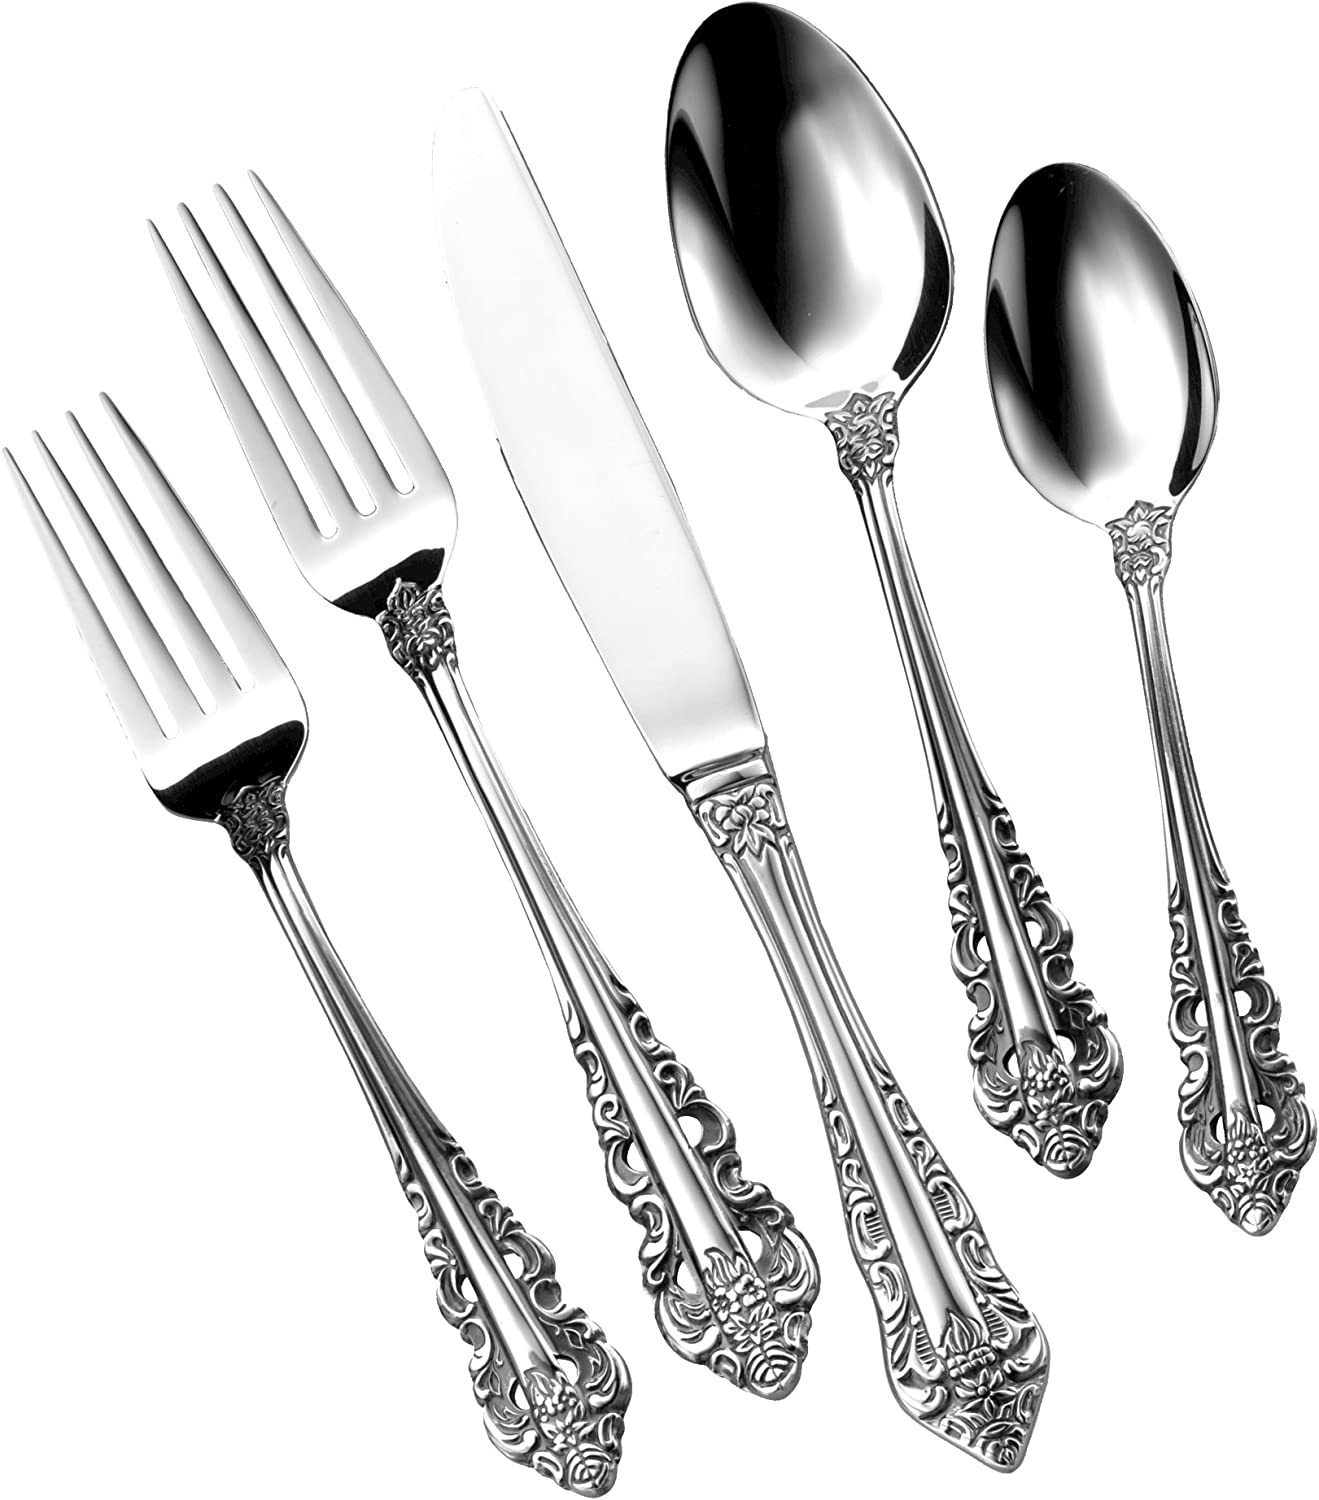 Utica Cutlery 816840 Classic Baroque Flatware Set, 40 Piece (Service for Eight), 18/10 Stainless